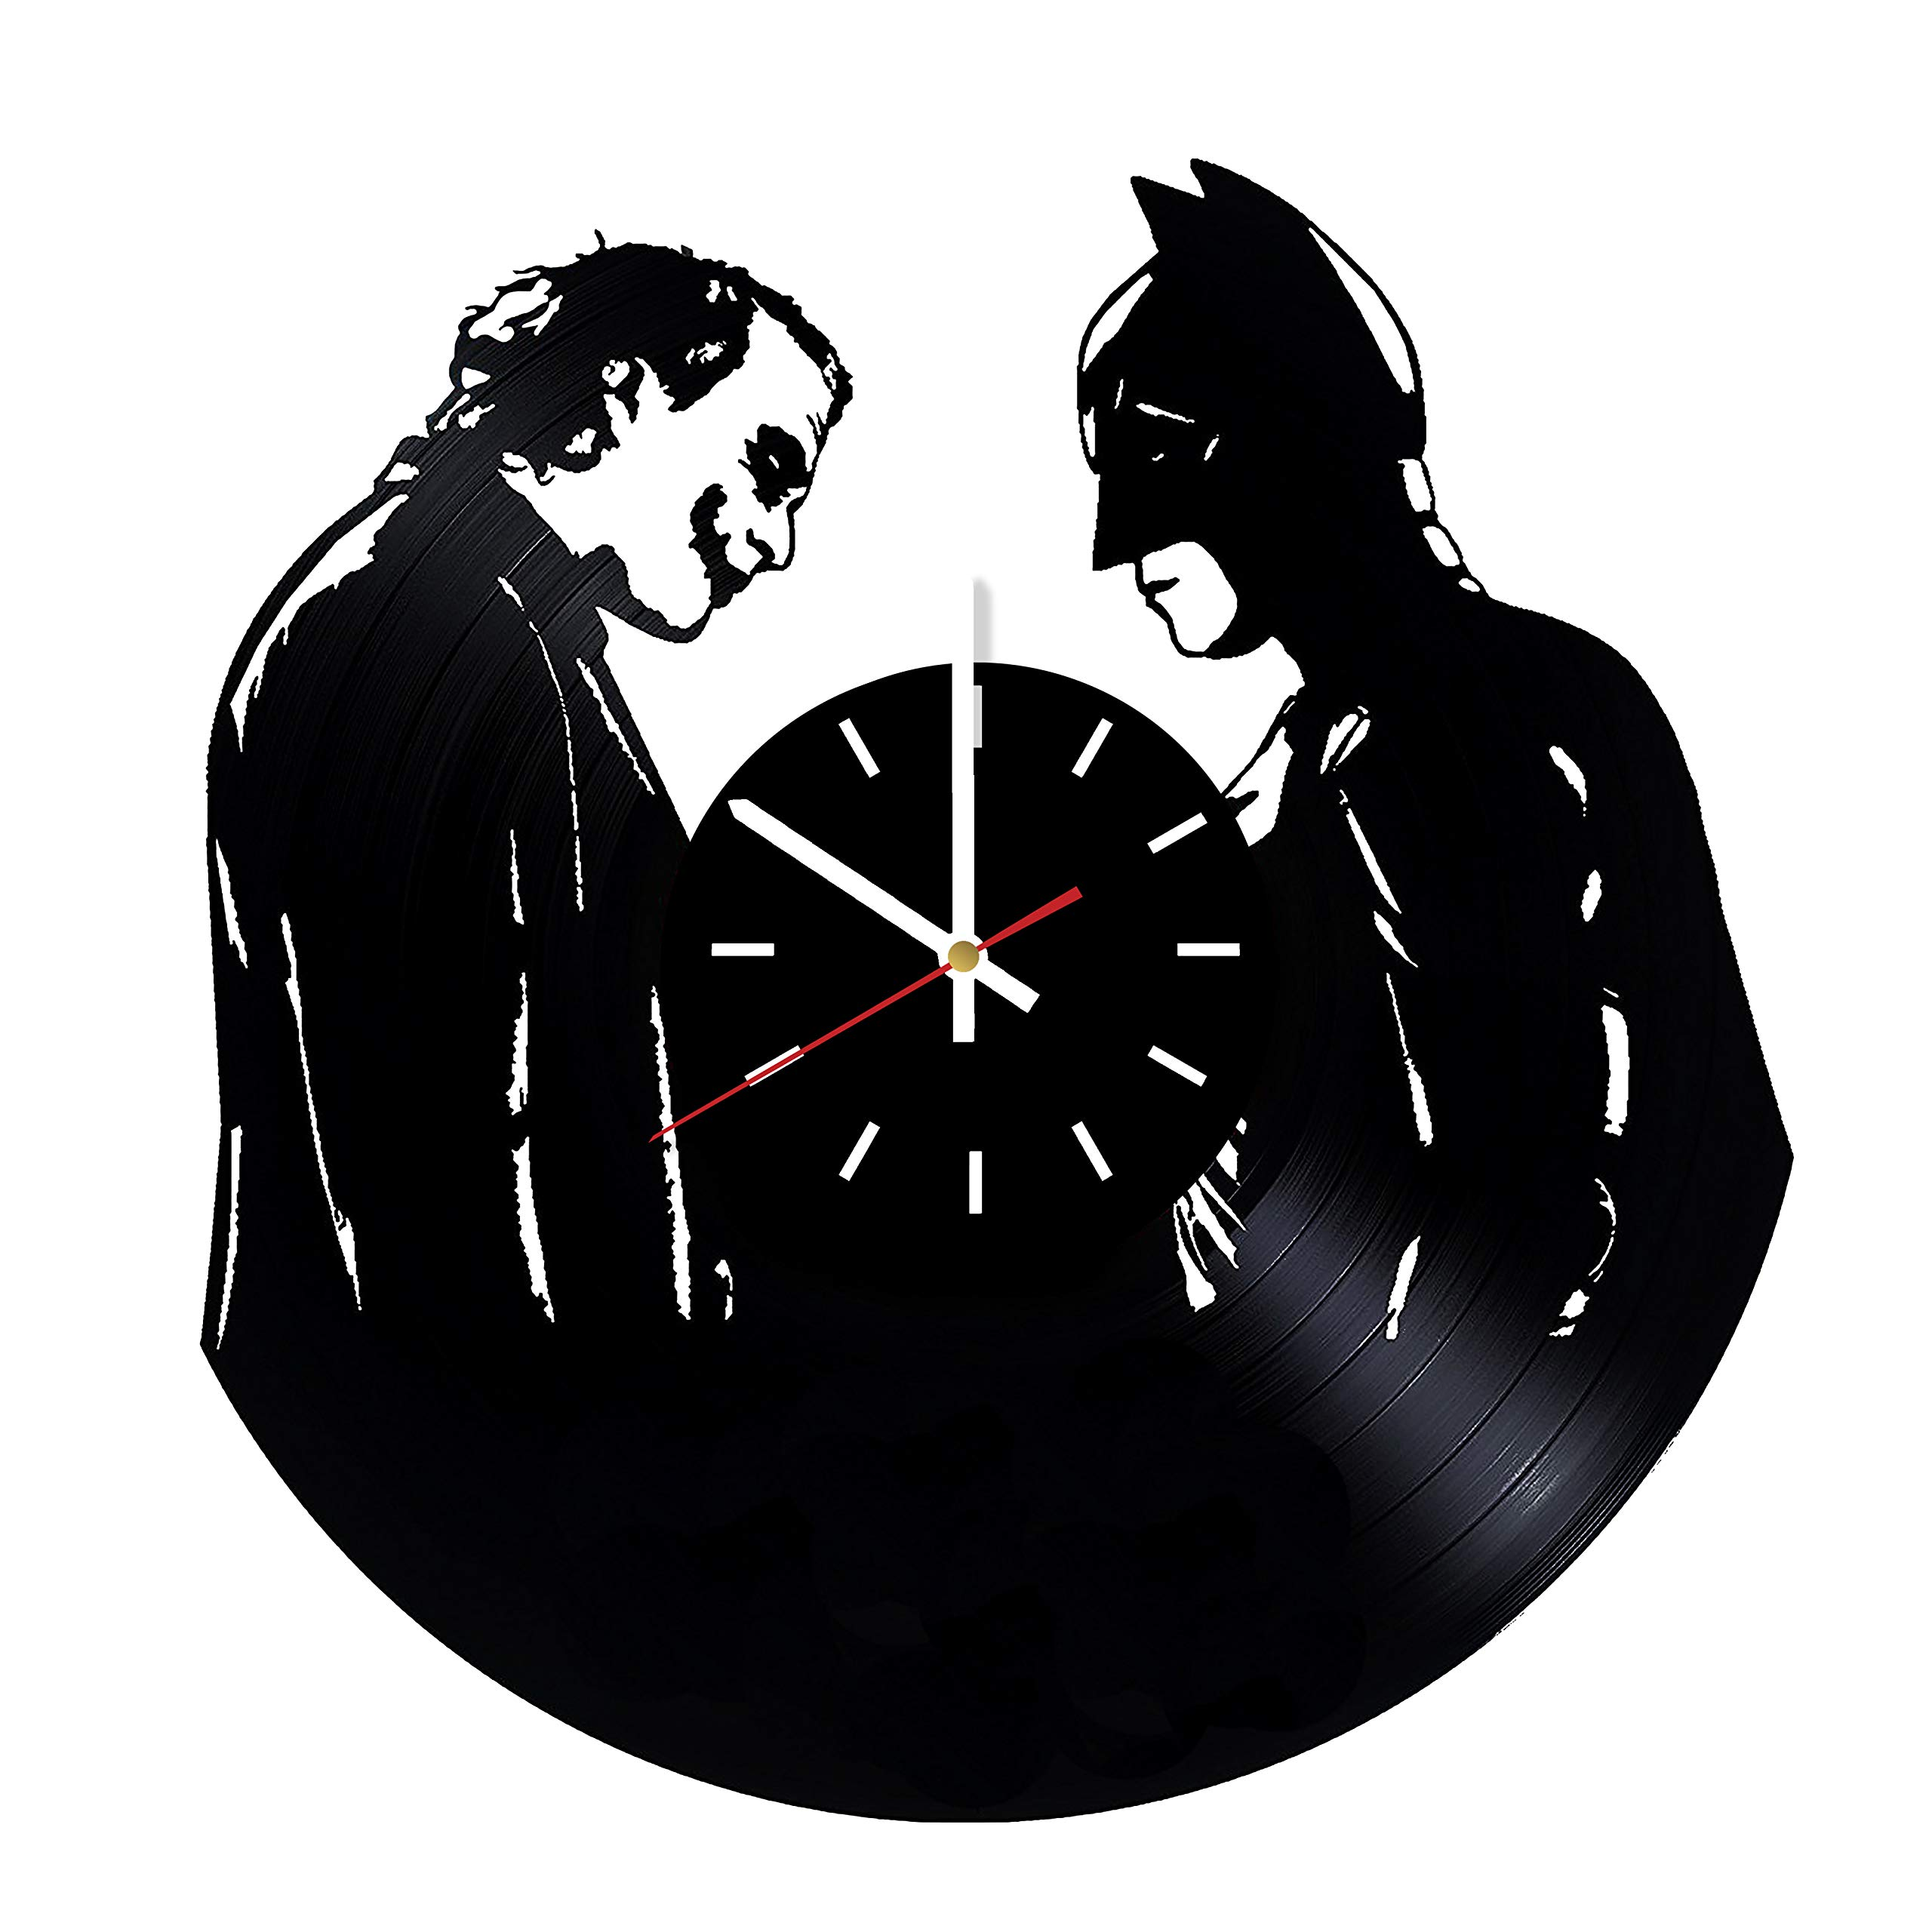 Everyday Arts Batman and Joker Artwork Vinyl Record Wall Clock - Get Unique Bedroom or Garage Wall Decor - Gift Ideas for Friends, Brother - Darth Vader Unique Modern Art